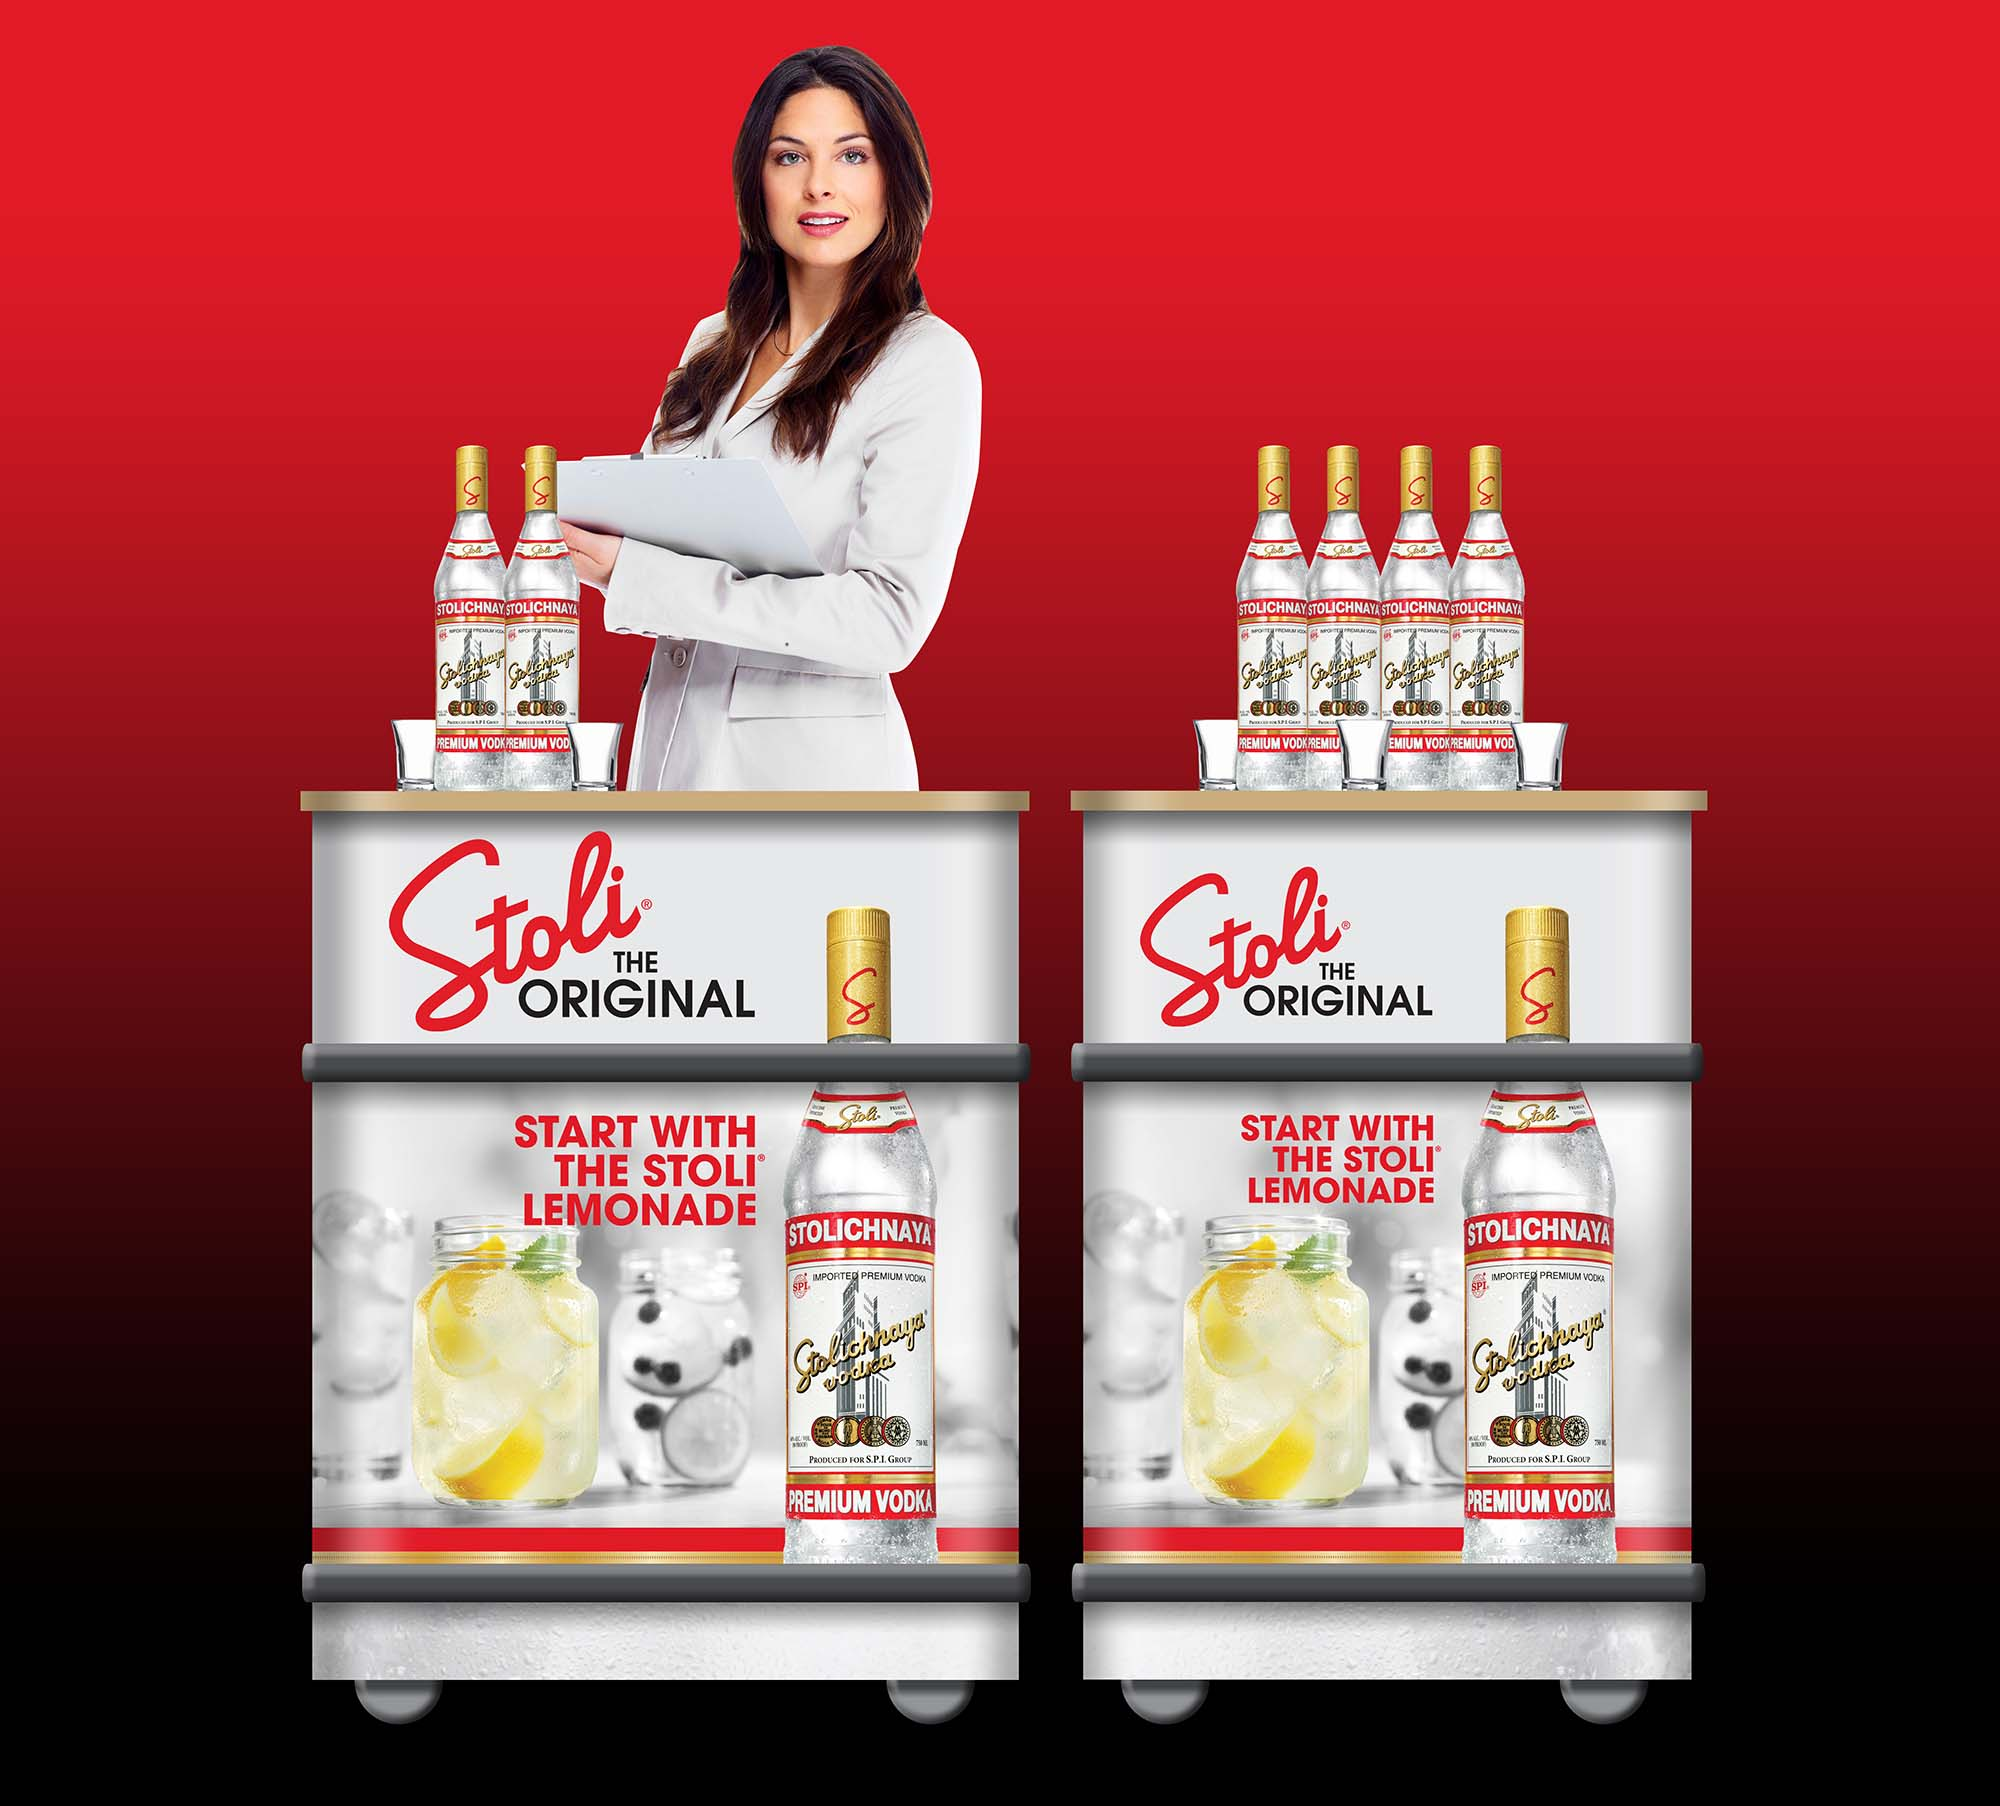 02_Stoli_stand_red_HR